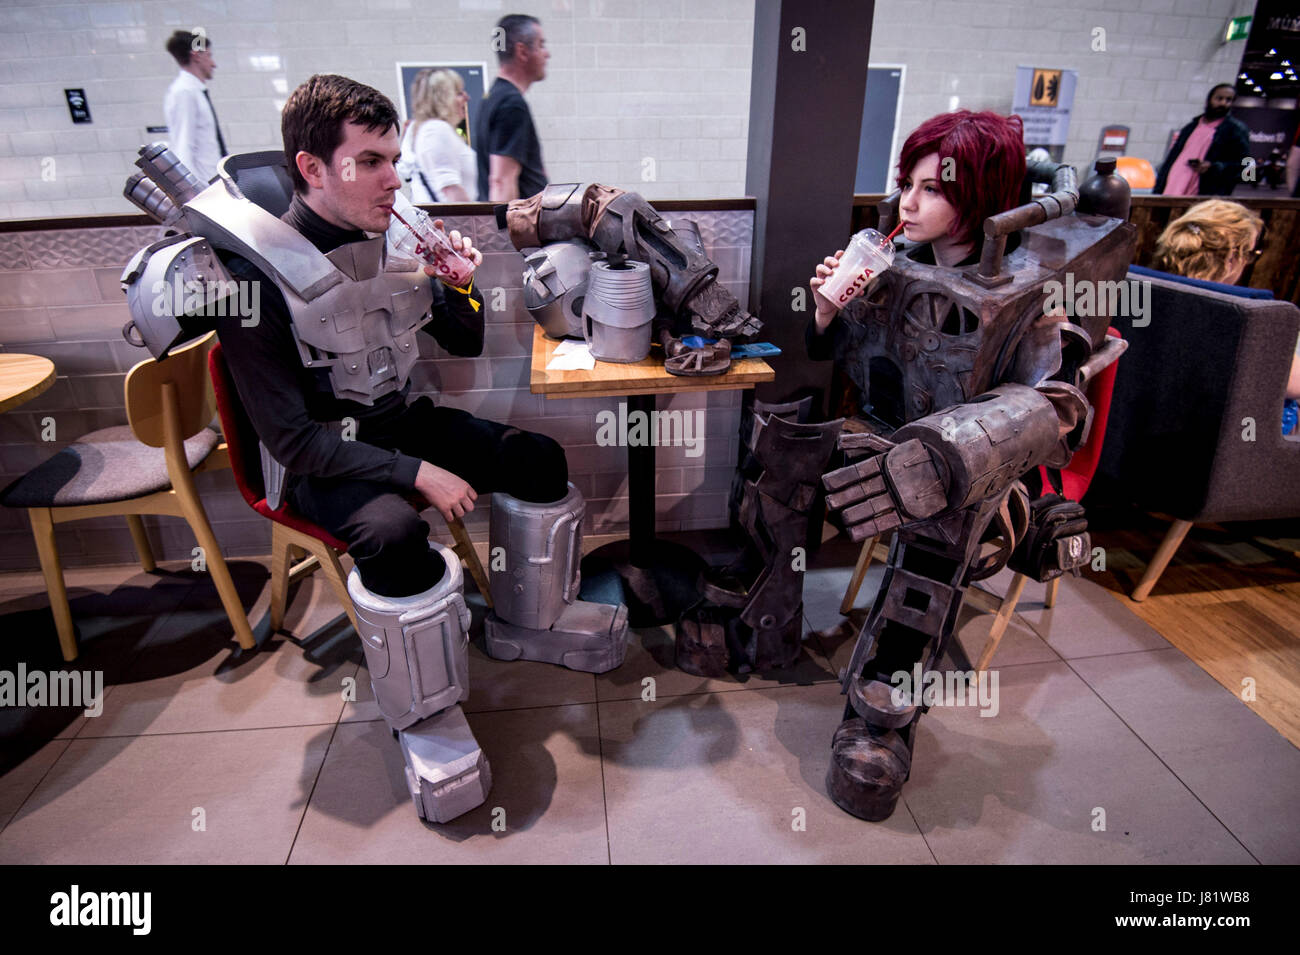 EDITORIAL USE ONLY @Blox_Blox and @Triskiedeka, two cosplayers dressed as robots from Fallout, enjoy a cold drink - Stock Image